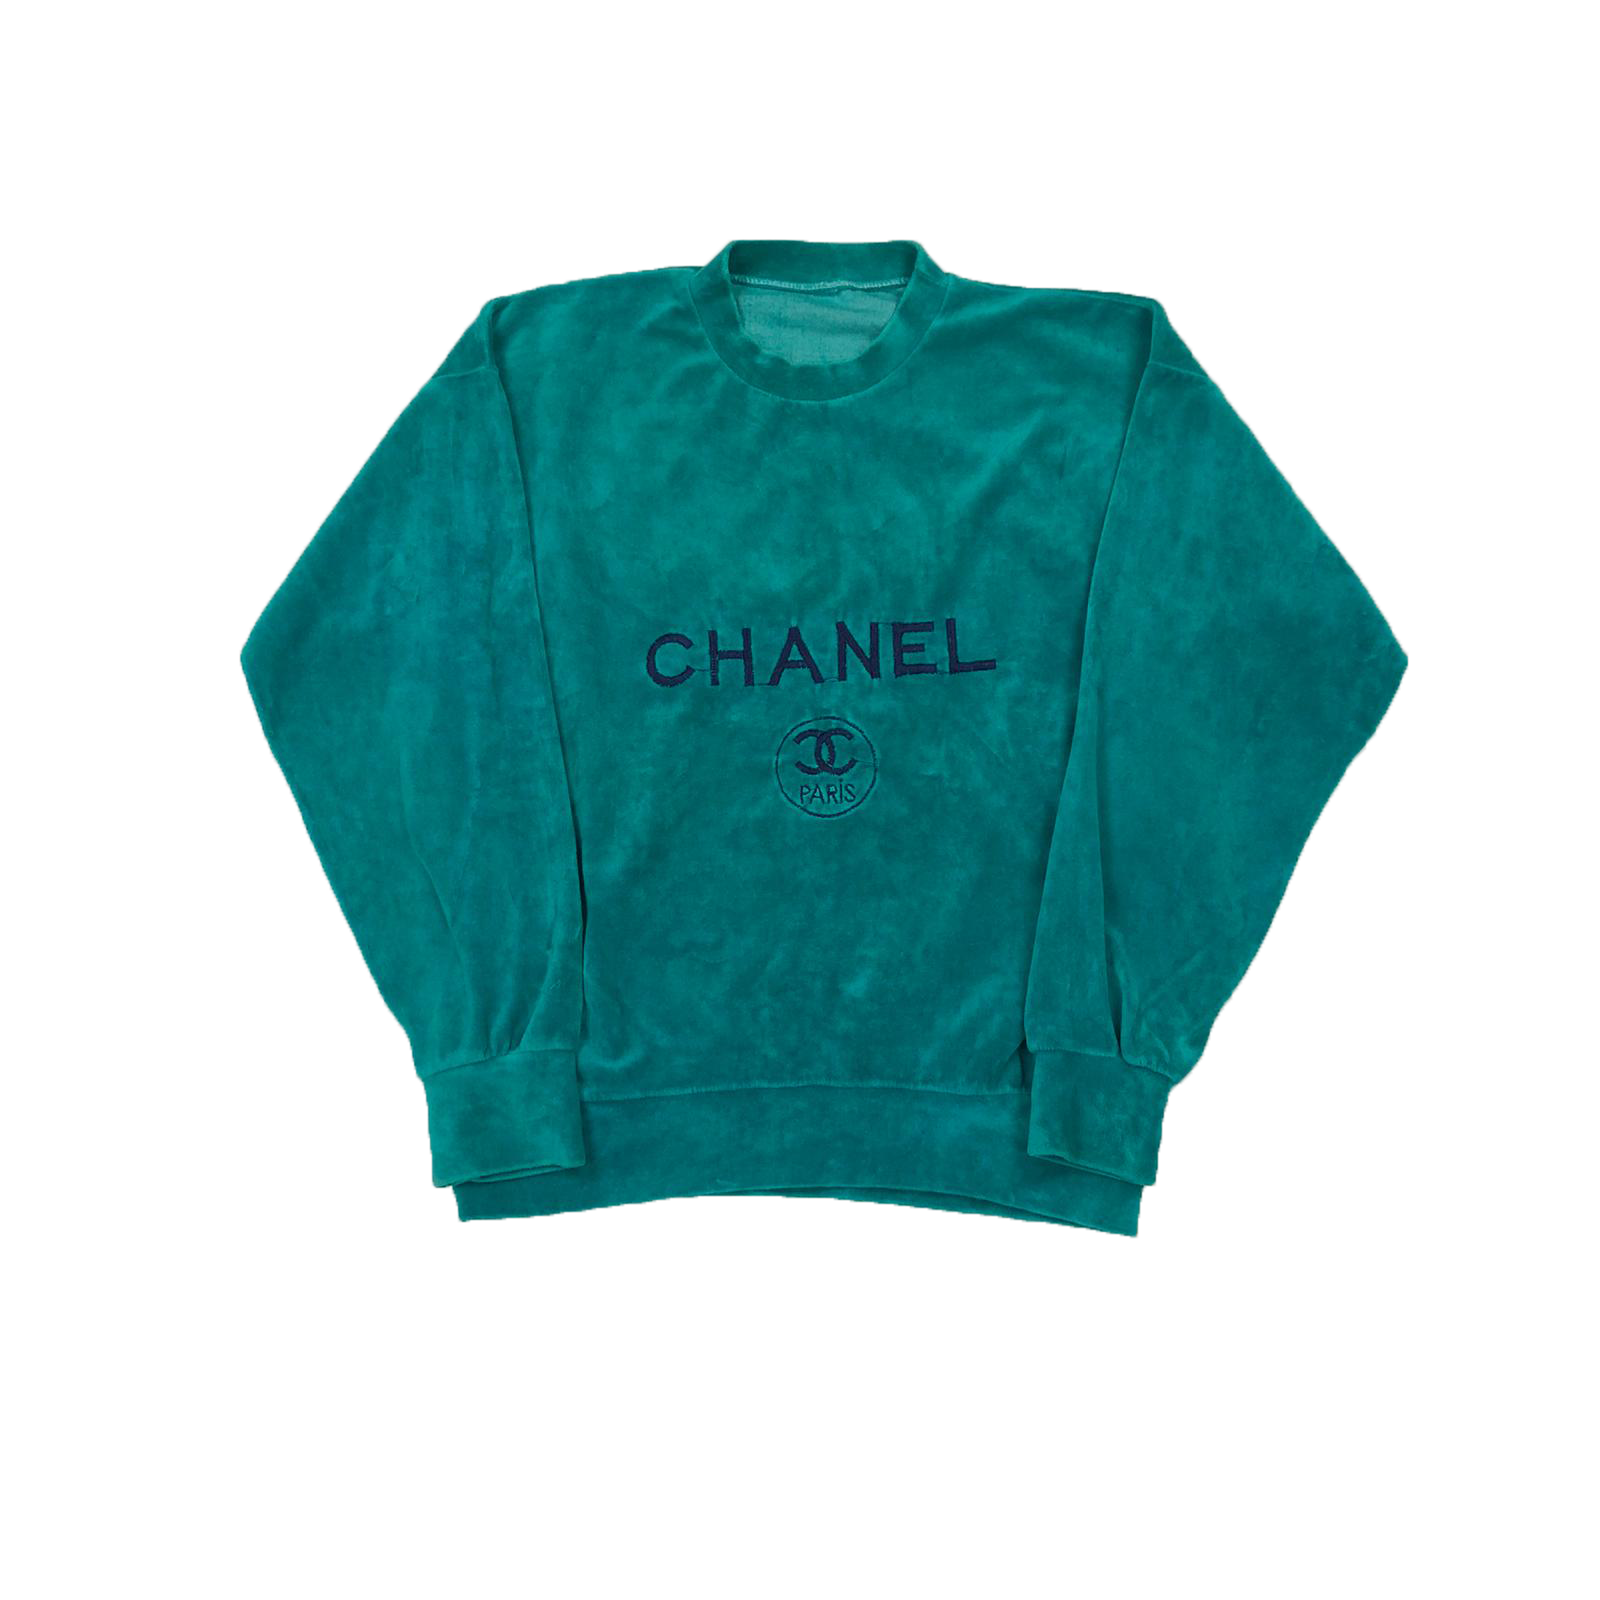 Chanel Velour sweatshirt